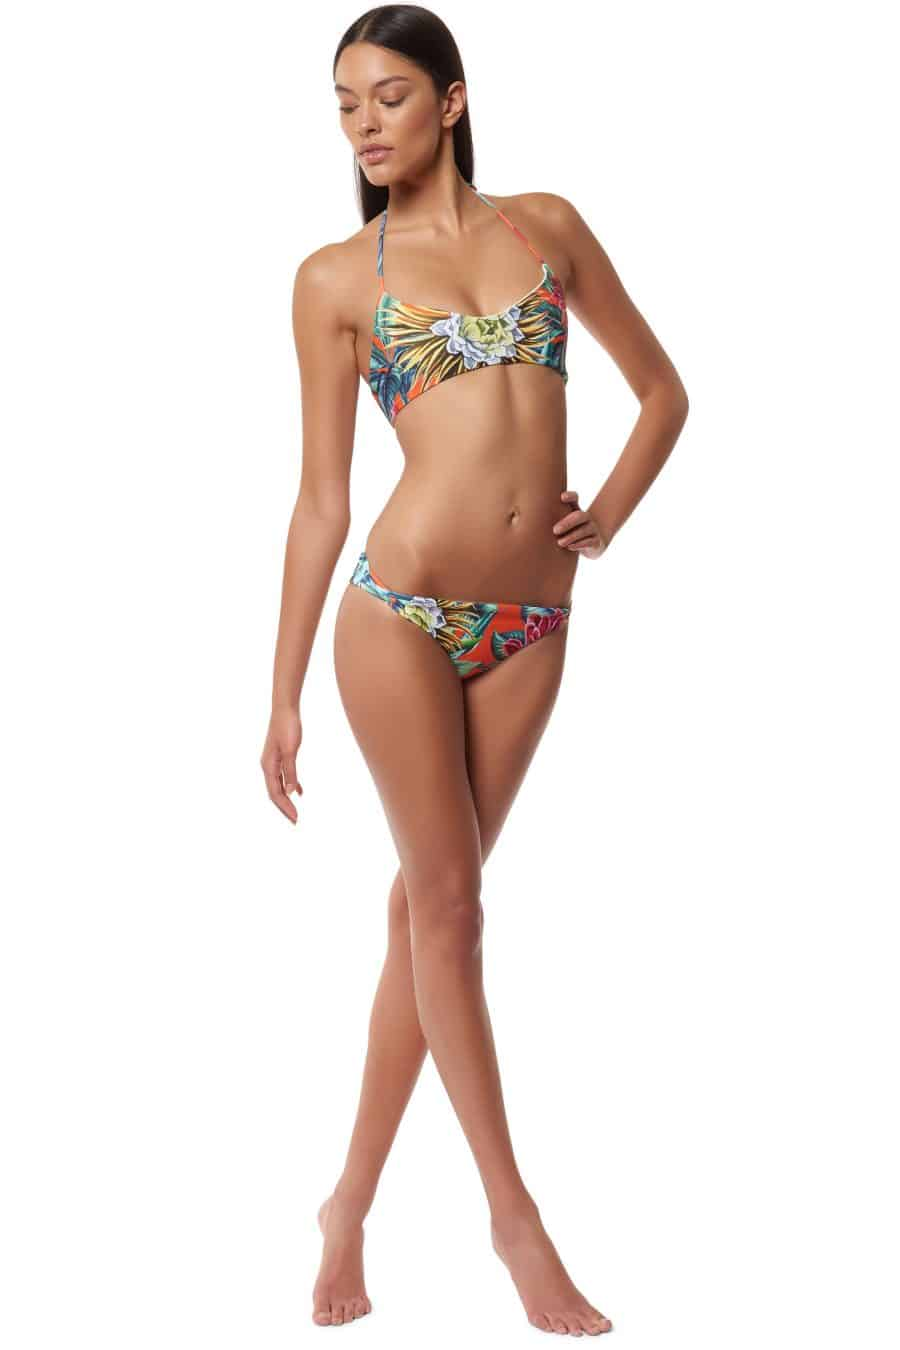 basket weave reversible bikini top & bottom in cactus floral / mara hoffman / Chic Surf Bikinis That Stay On In The Waves